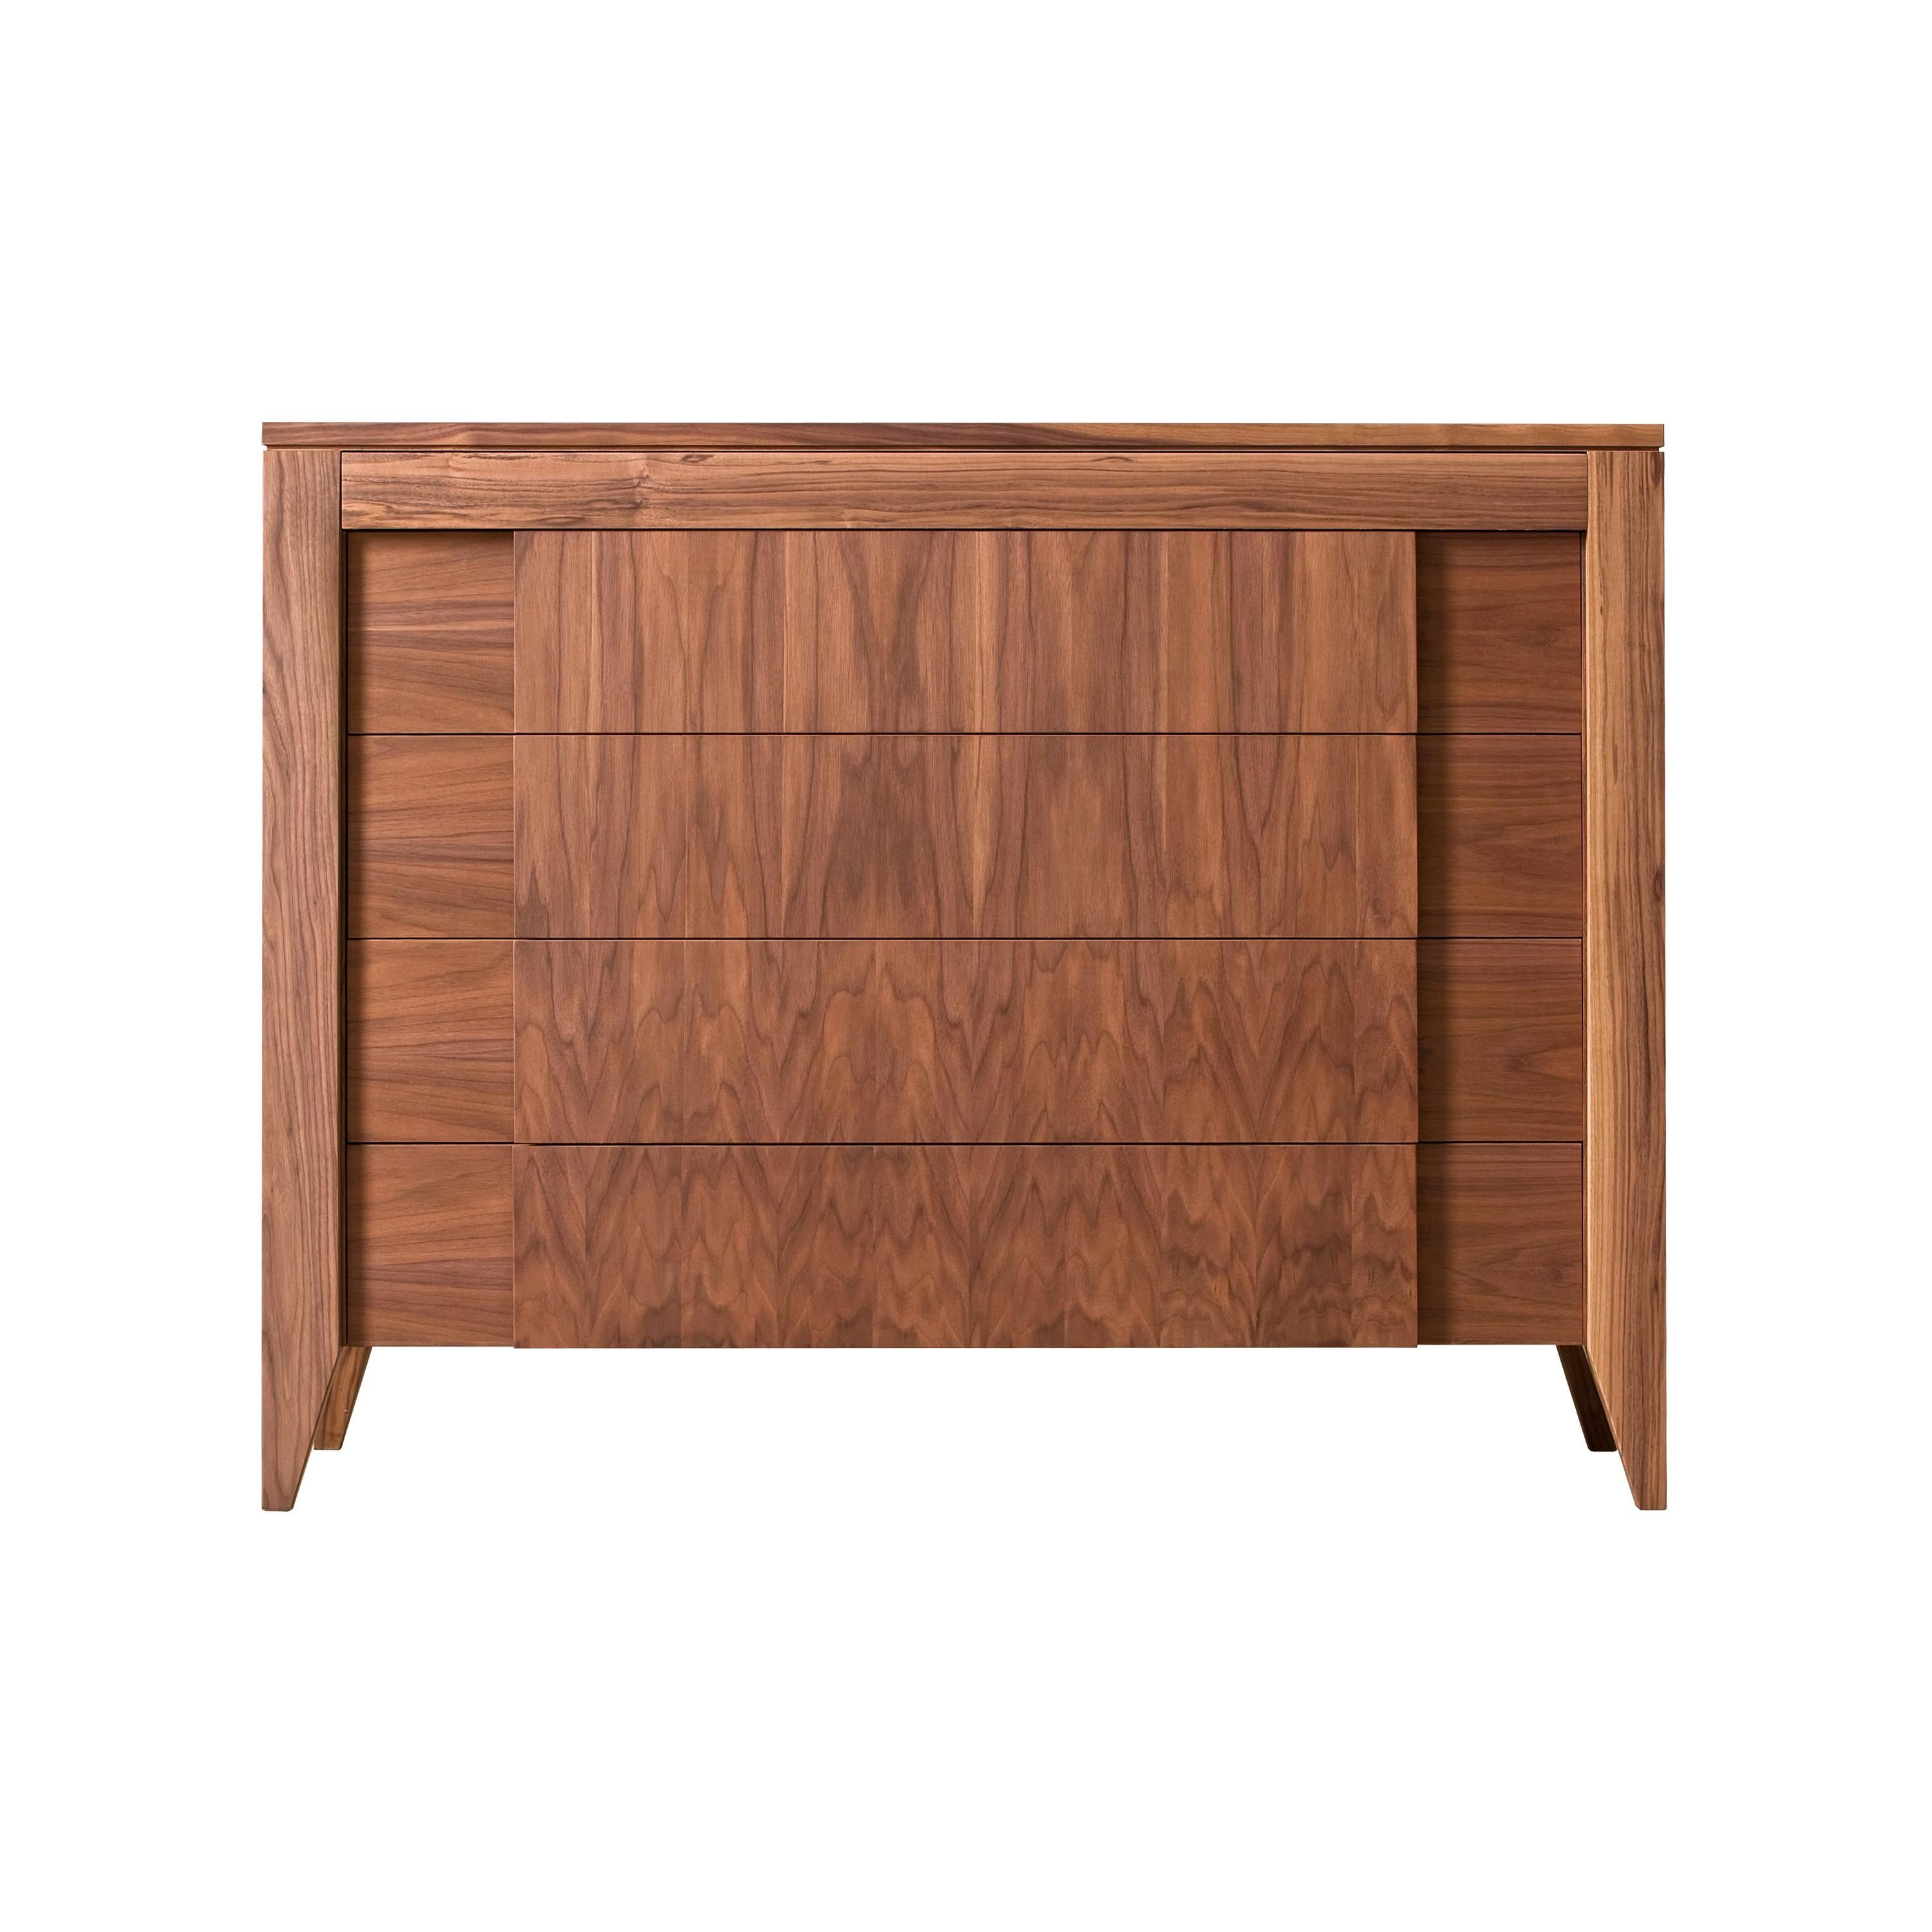 Anerio by Morelato, Chest of Drawers Made of ash Wood